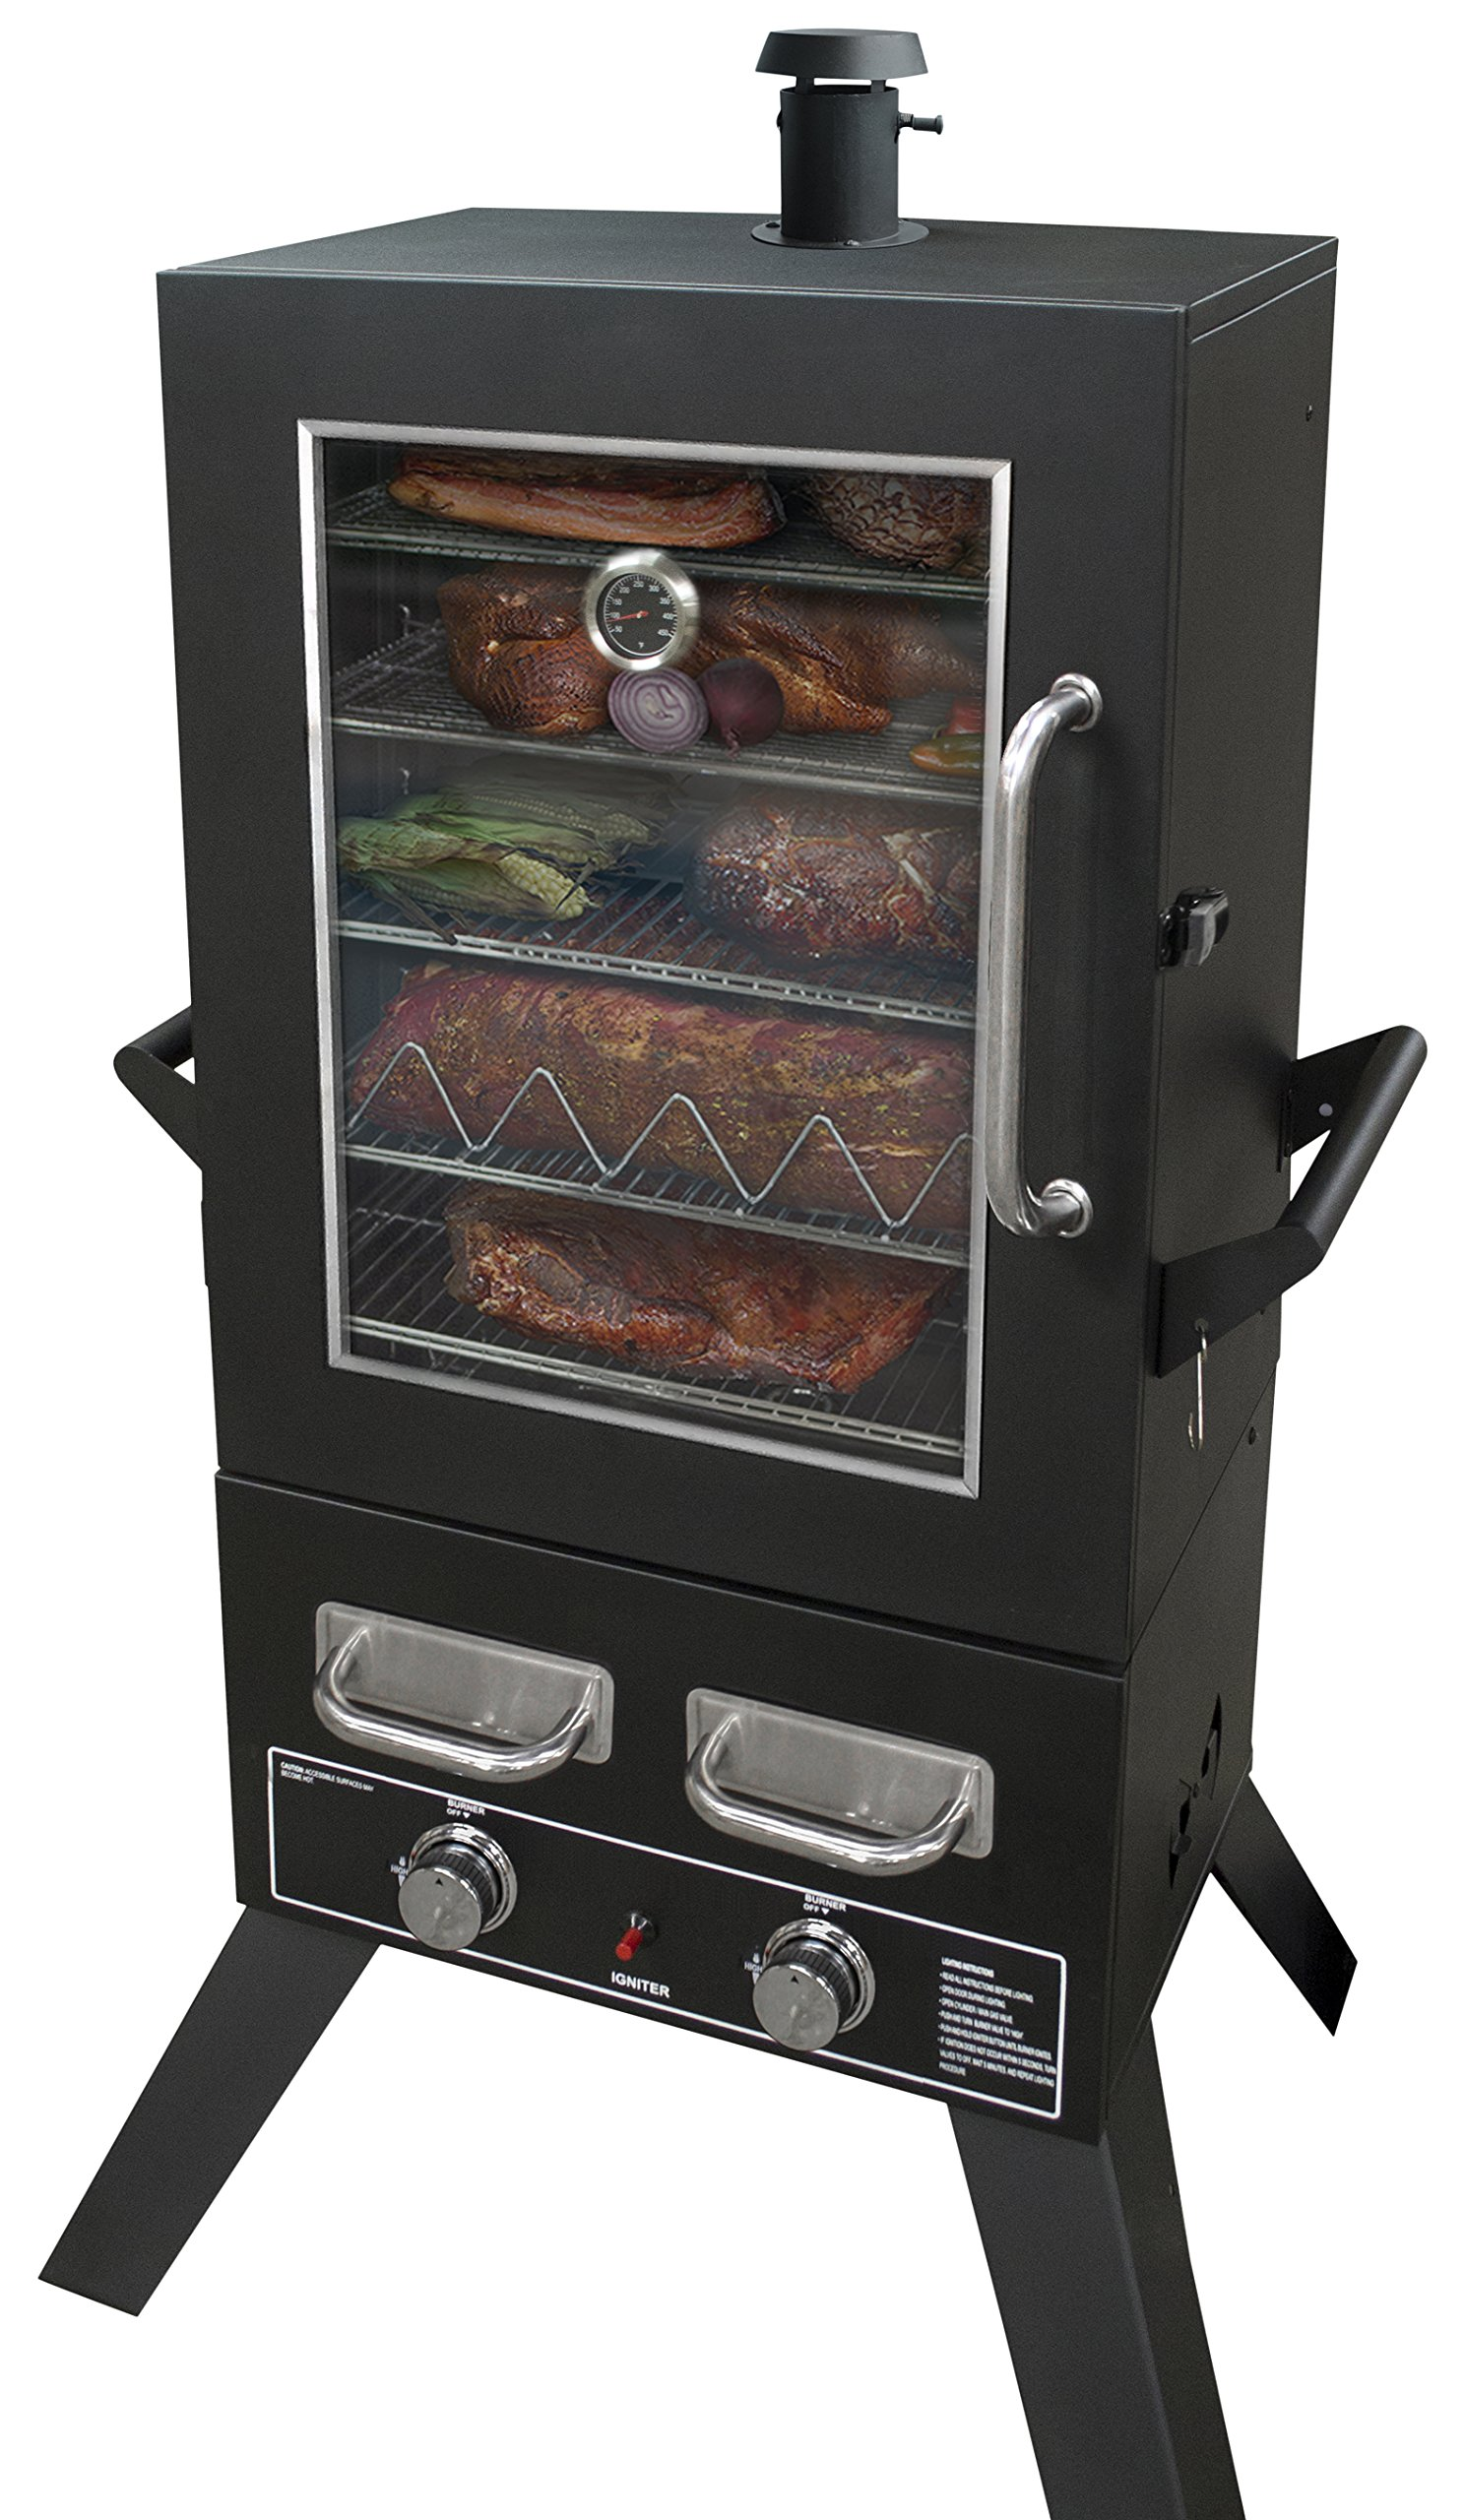 Smoke Hollow PS4415 Propane Smoker, 33'' x 24.5'' x 60'', Black by Smoke Hollow